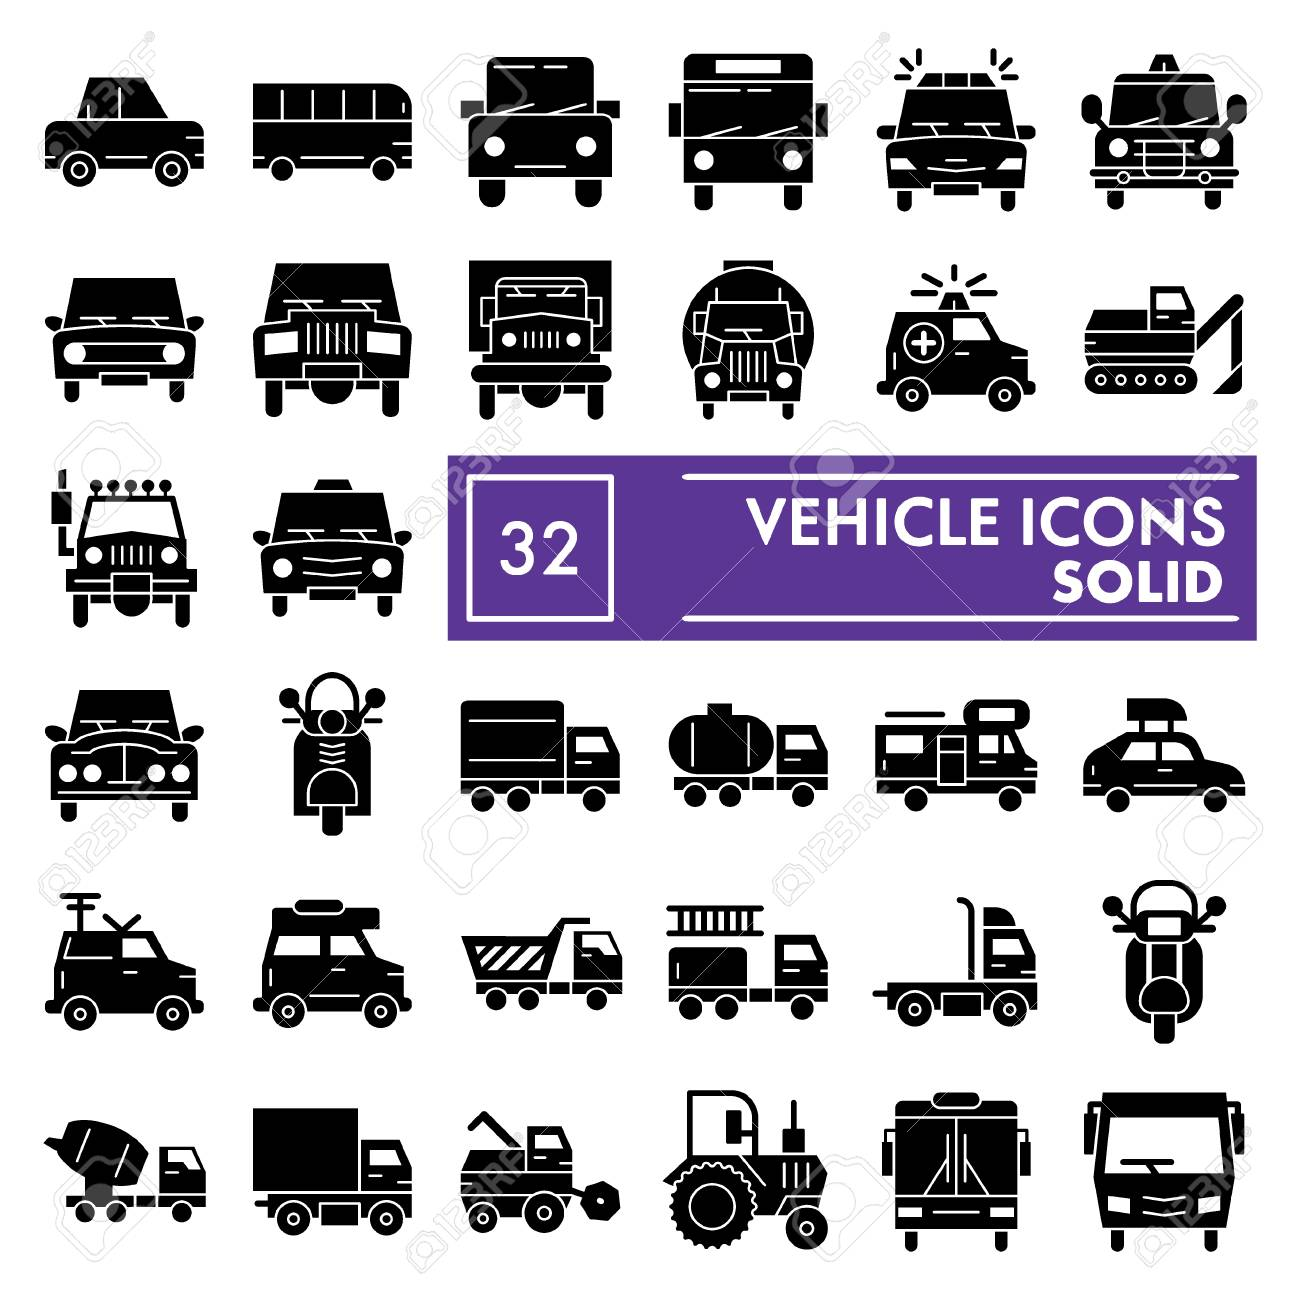 Illustration vehicle glyph icon set car symbols collection vector sketches logo illustrations auto signs solid pictograms package isolated on white